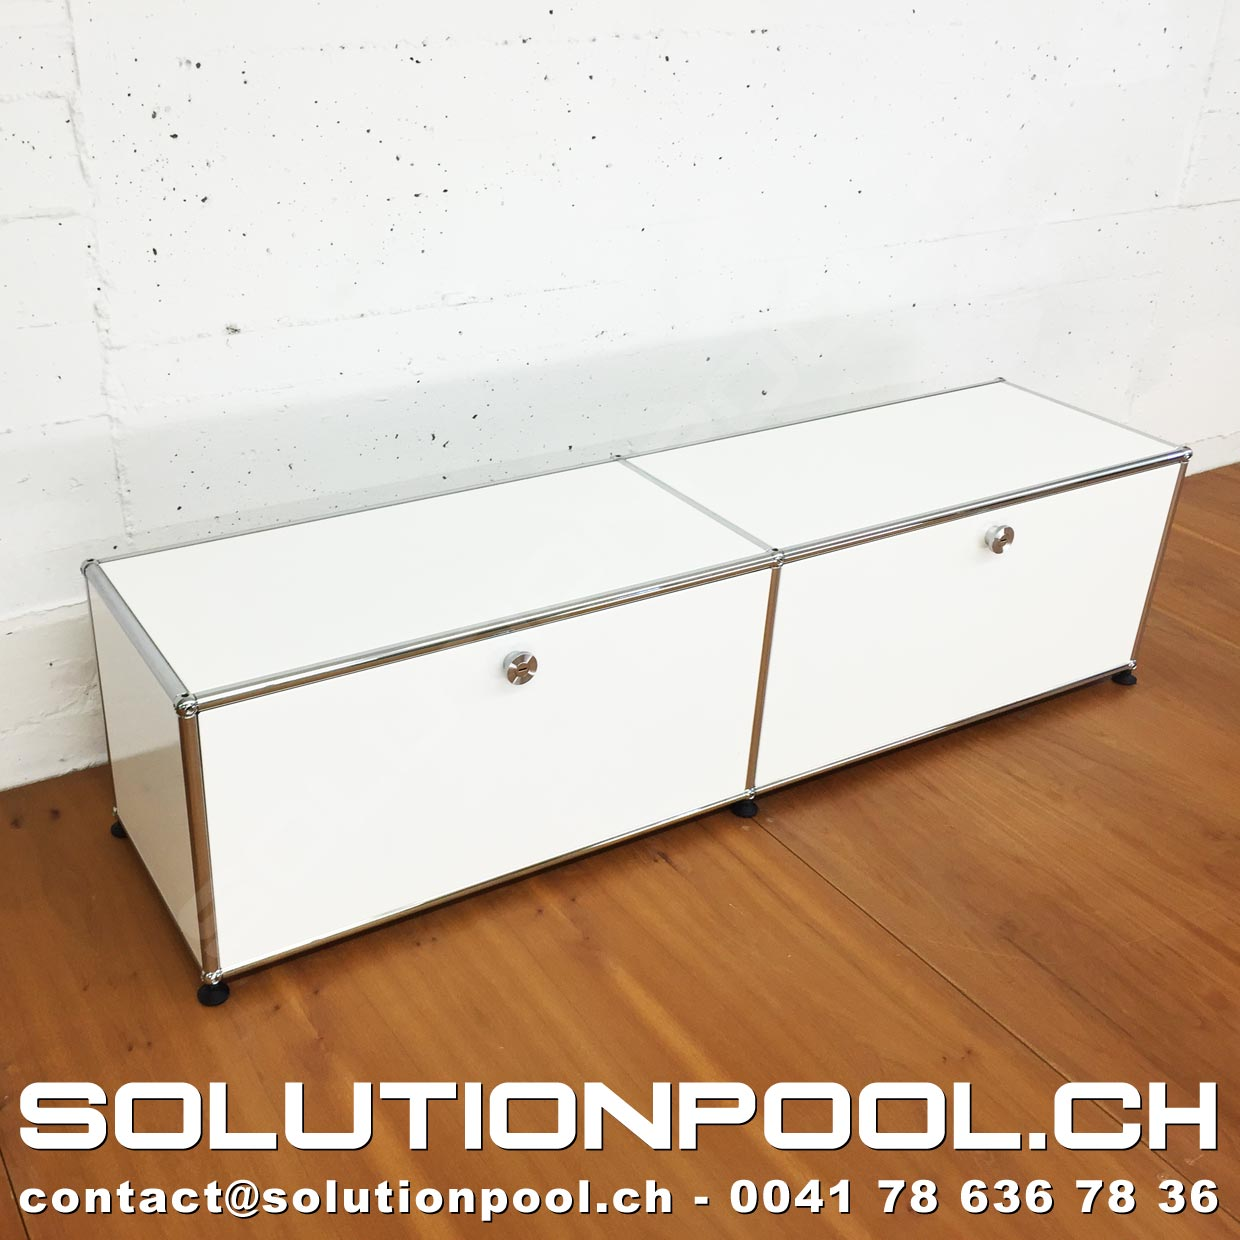 USM Lowboard Weiss  SOLUTIONPOOL  USM Occasion & Services -> Lowboard Usm Weiss